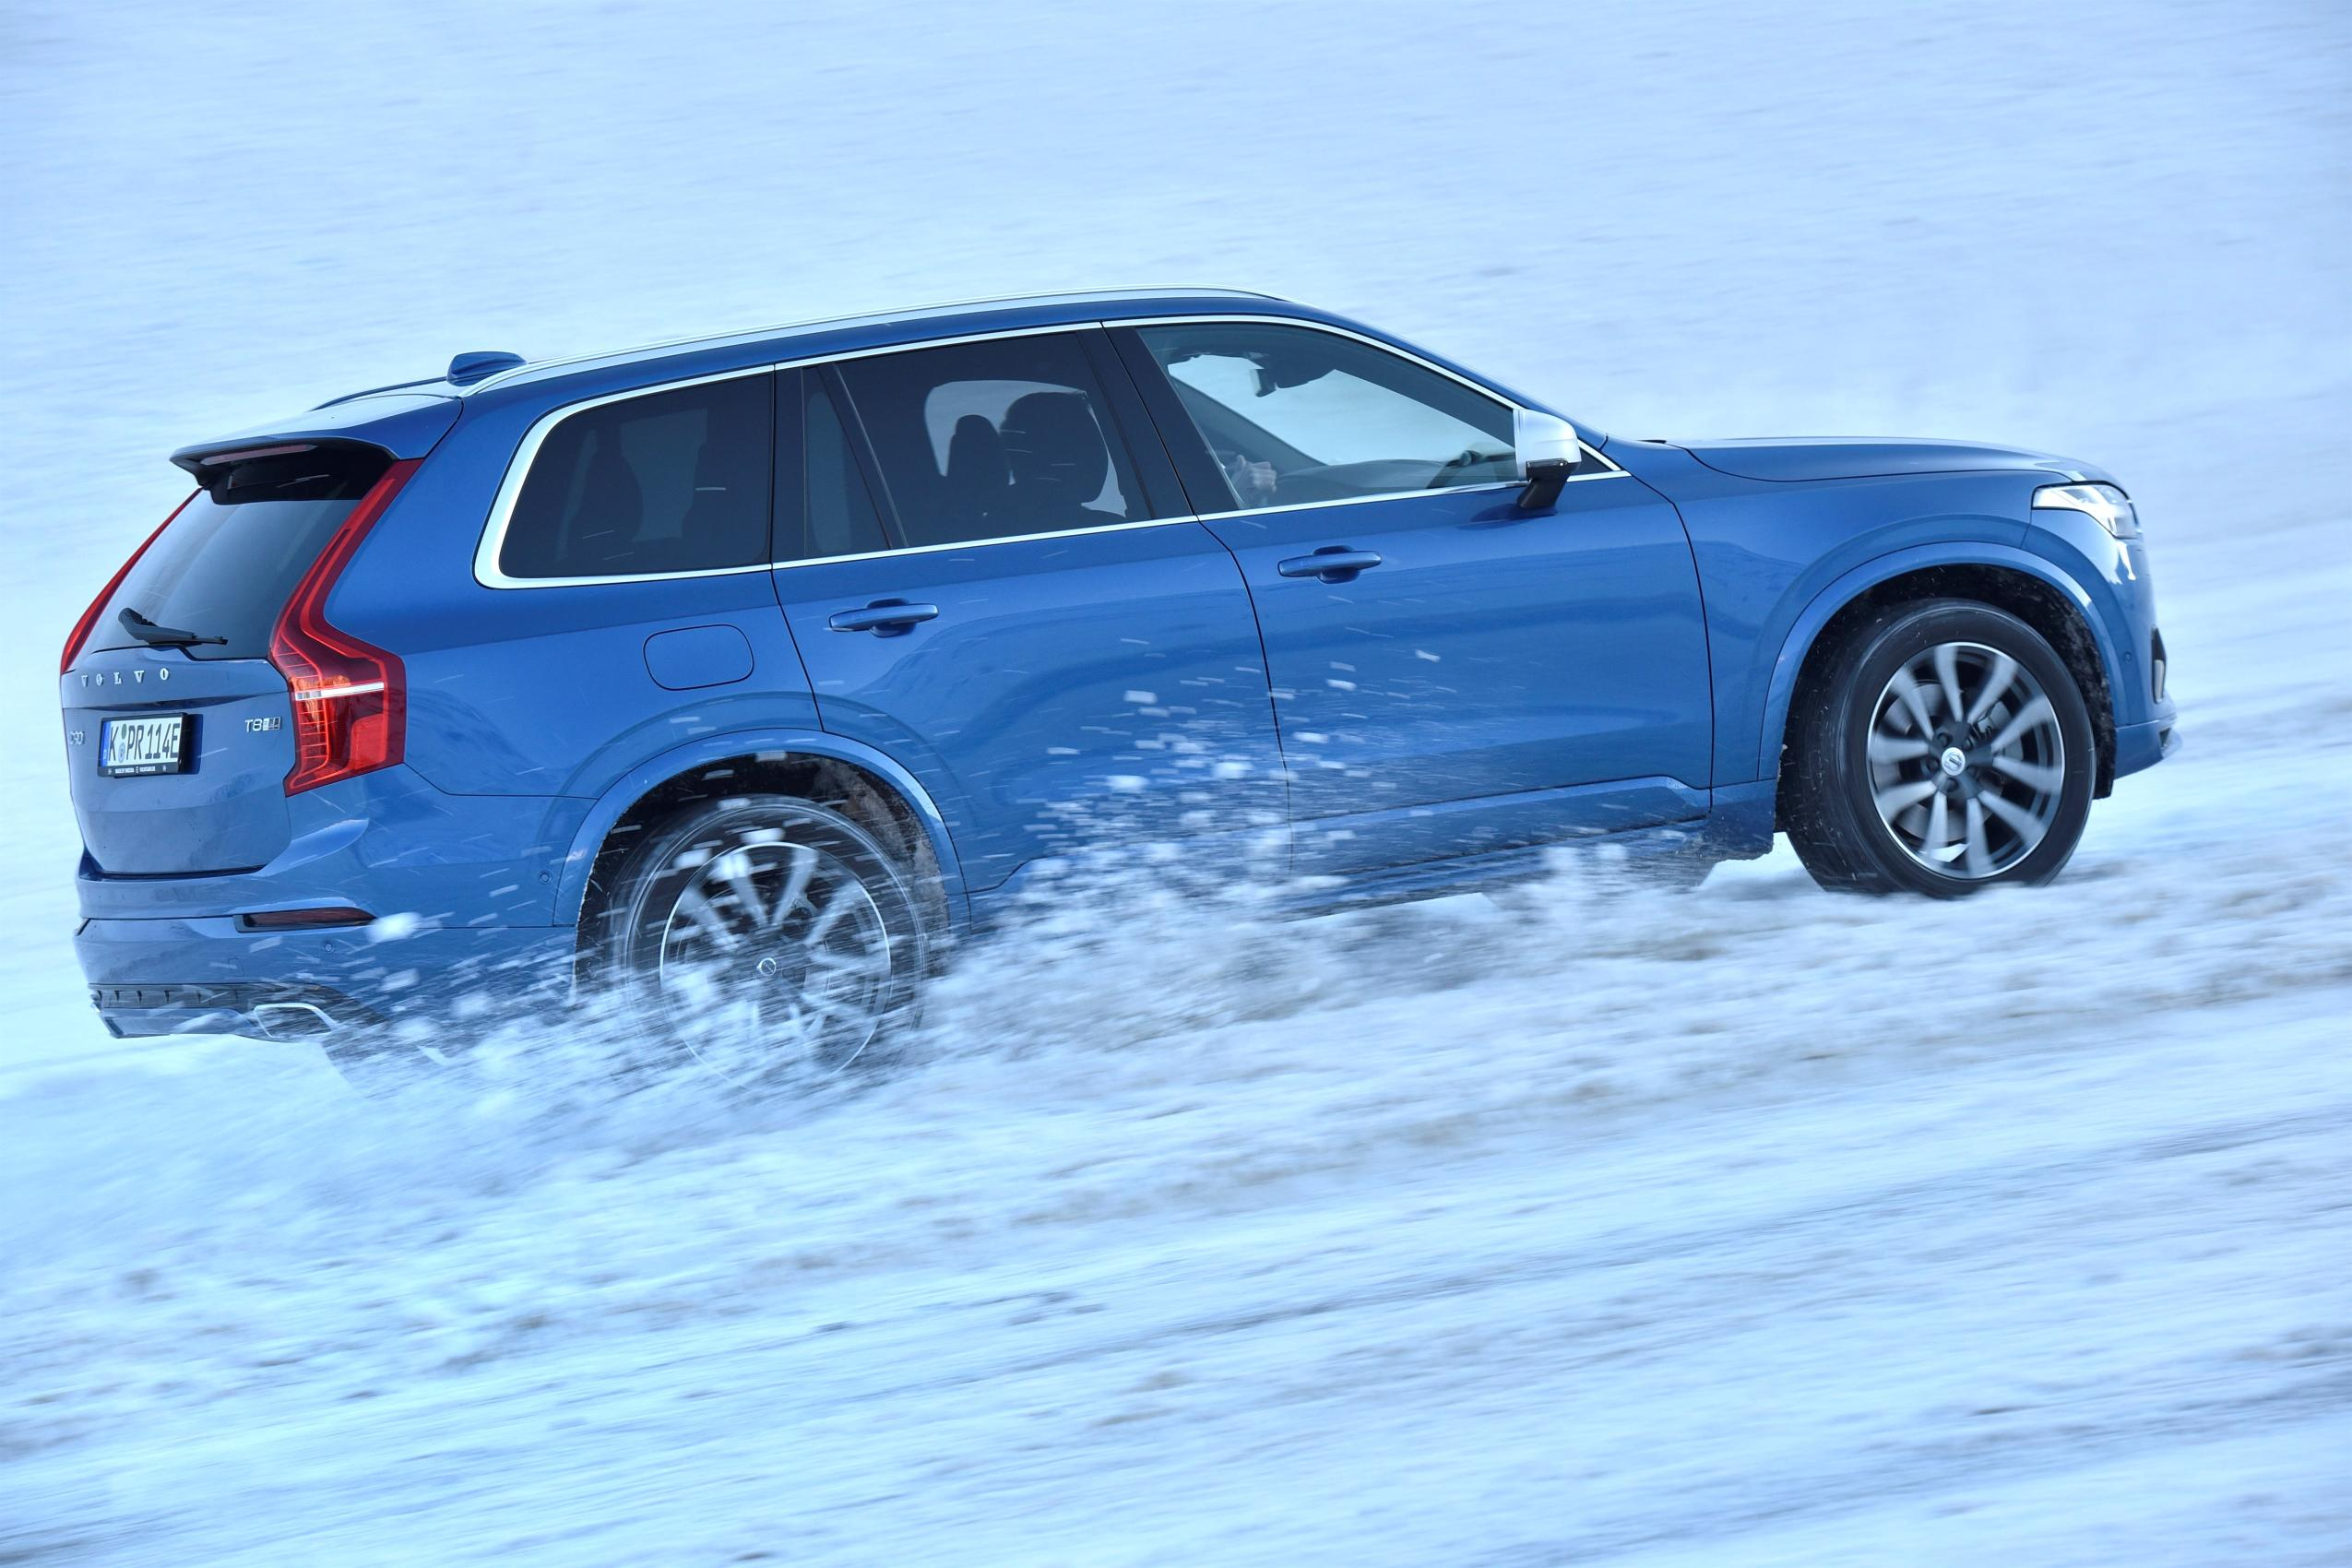 2017 Volvo Updates: XC90 D5 PowerPulse, T5 AWD, S60 Cross Country D3 - autoevolution